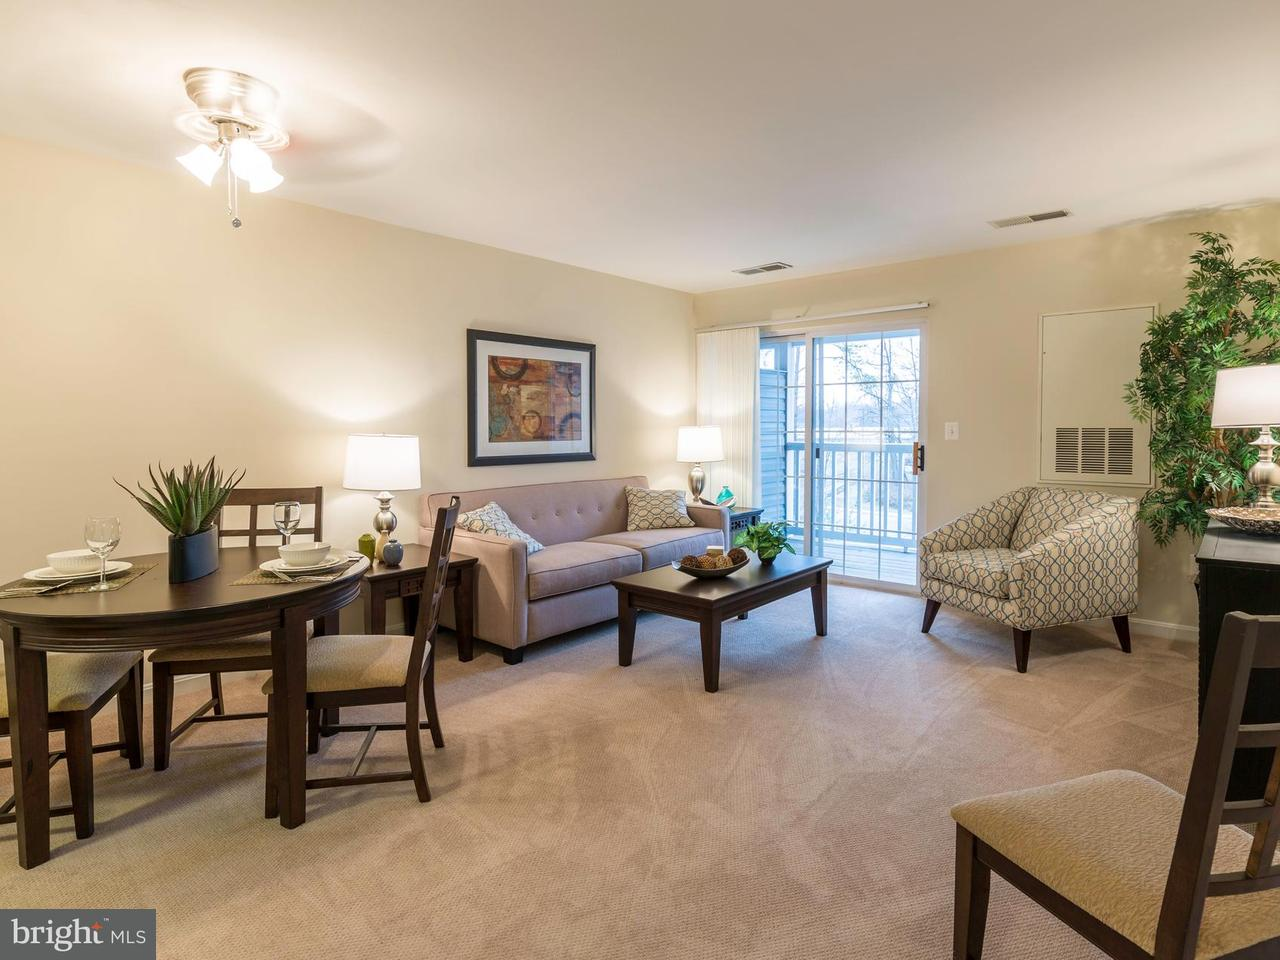 Single Family for Rent at N/A, 931 Edgewood Road Annapolis, Maryland 21403 United States